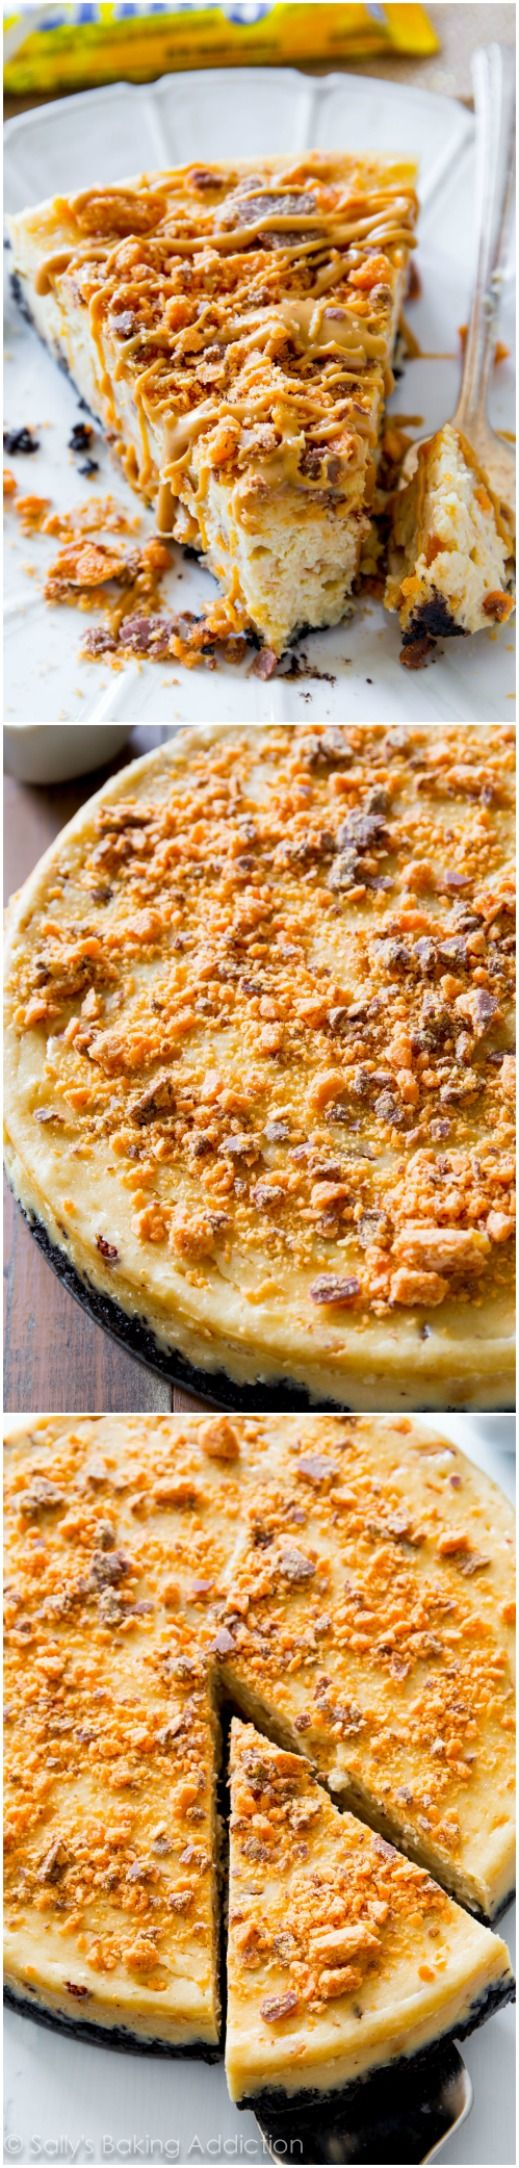 Everyone will go crazy for this Peanut Butter Butterfinger Cheesecake recipe! Friends begged for the recipe.